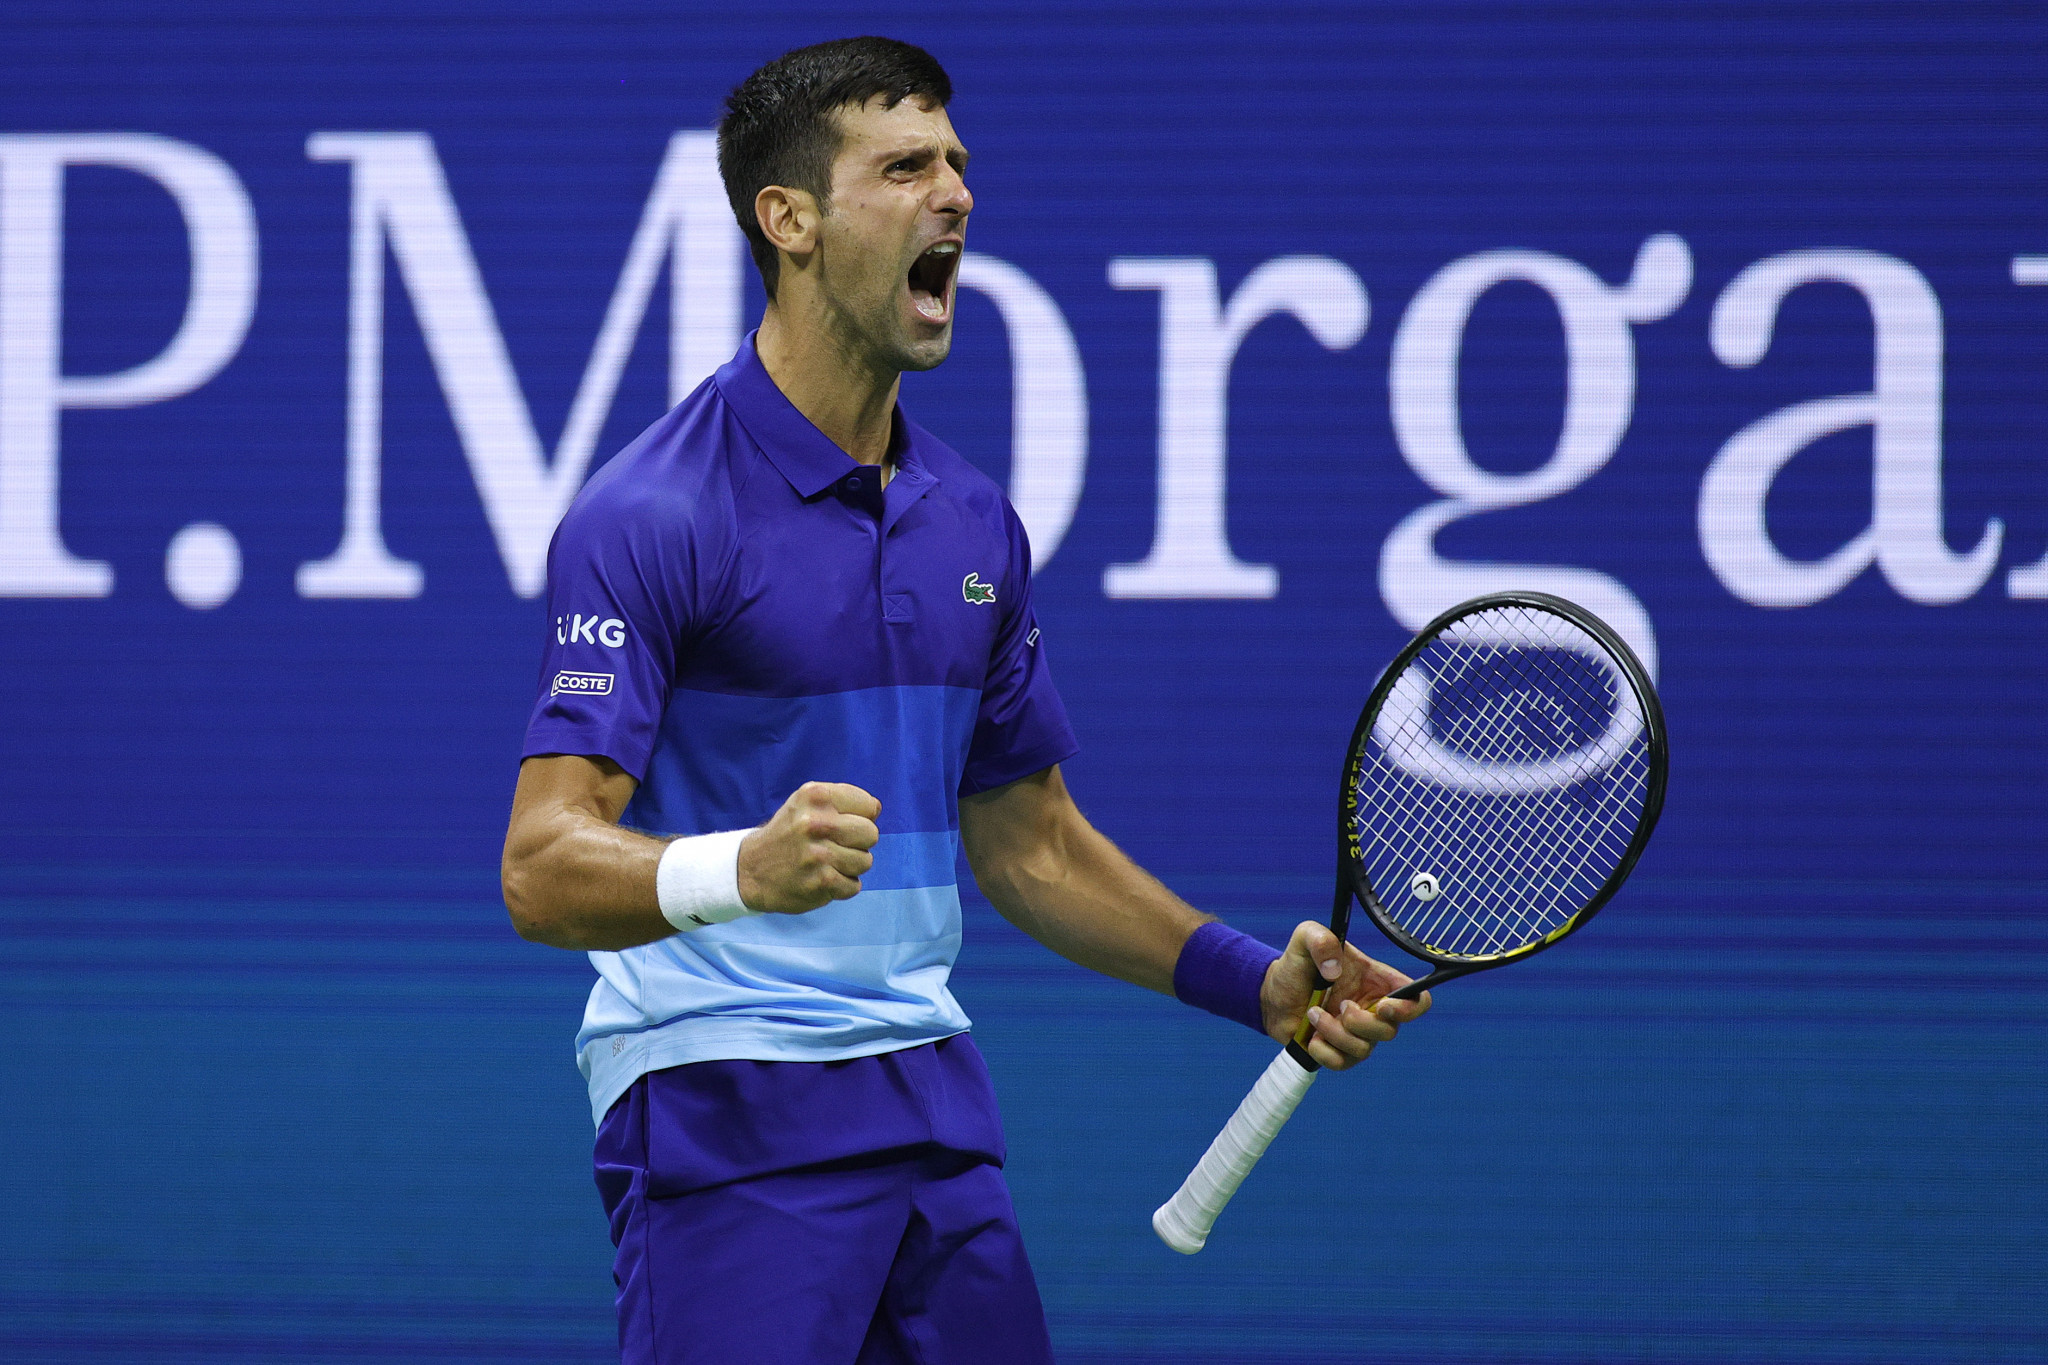 Djokovic one step from history as he sets up US Open final against Medvedev